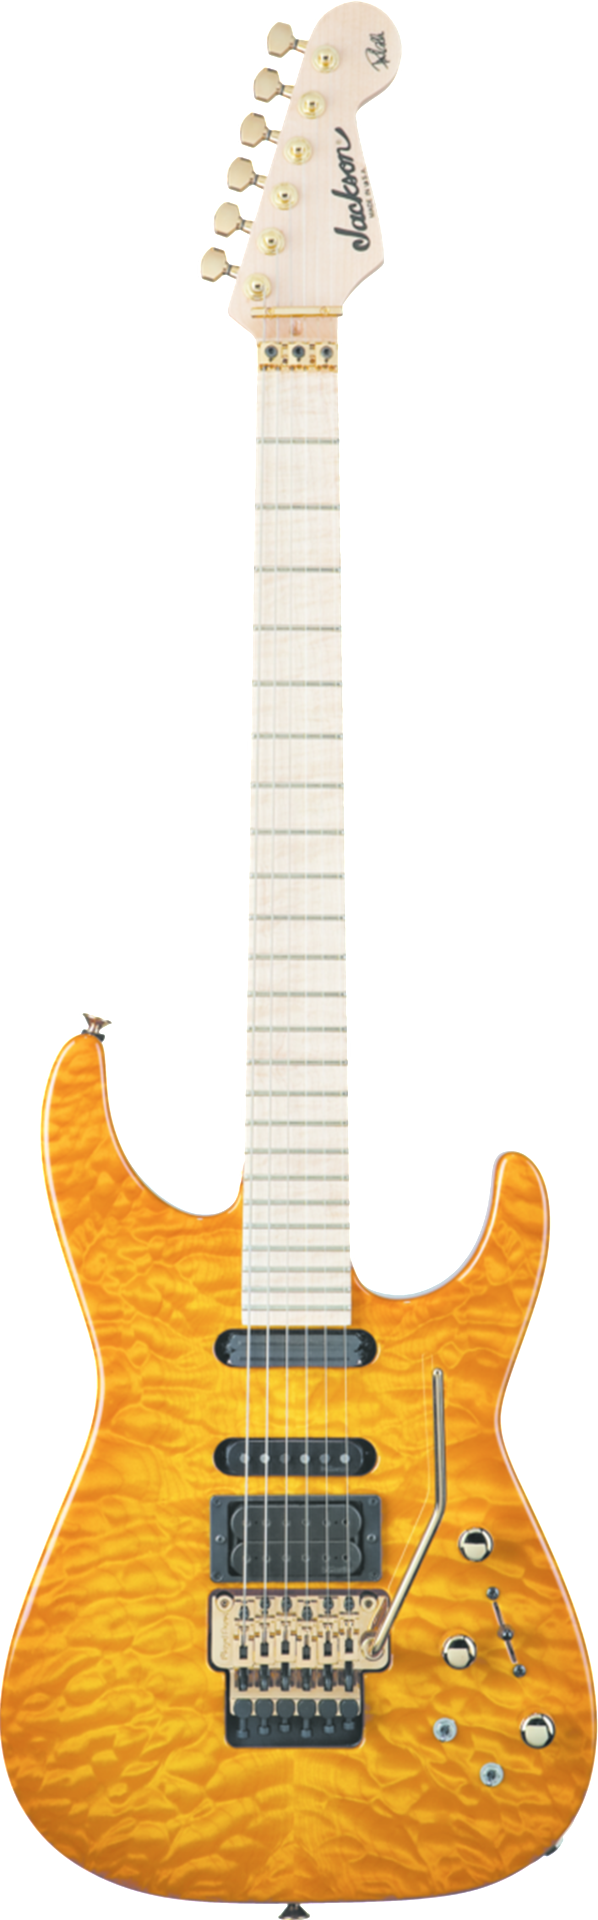 Jackson USA SIGNATURE PHIL COLLEN PC1™